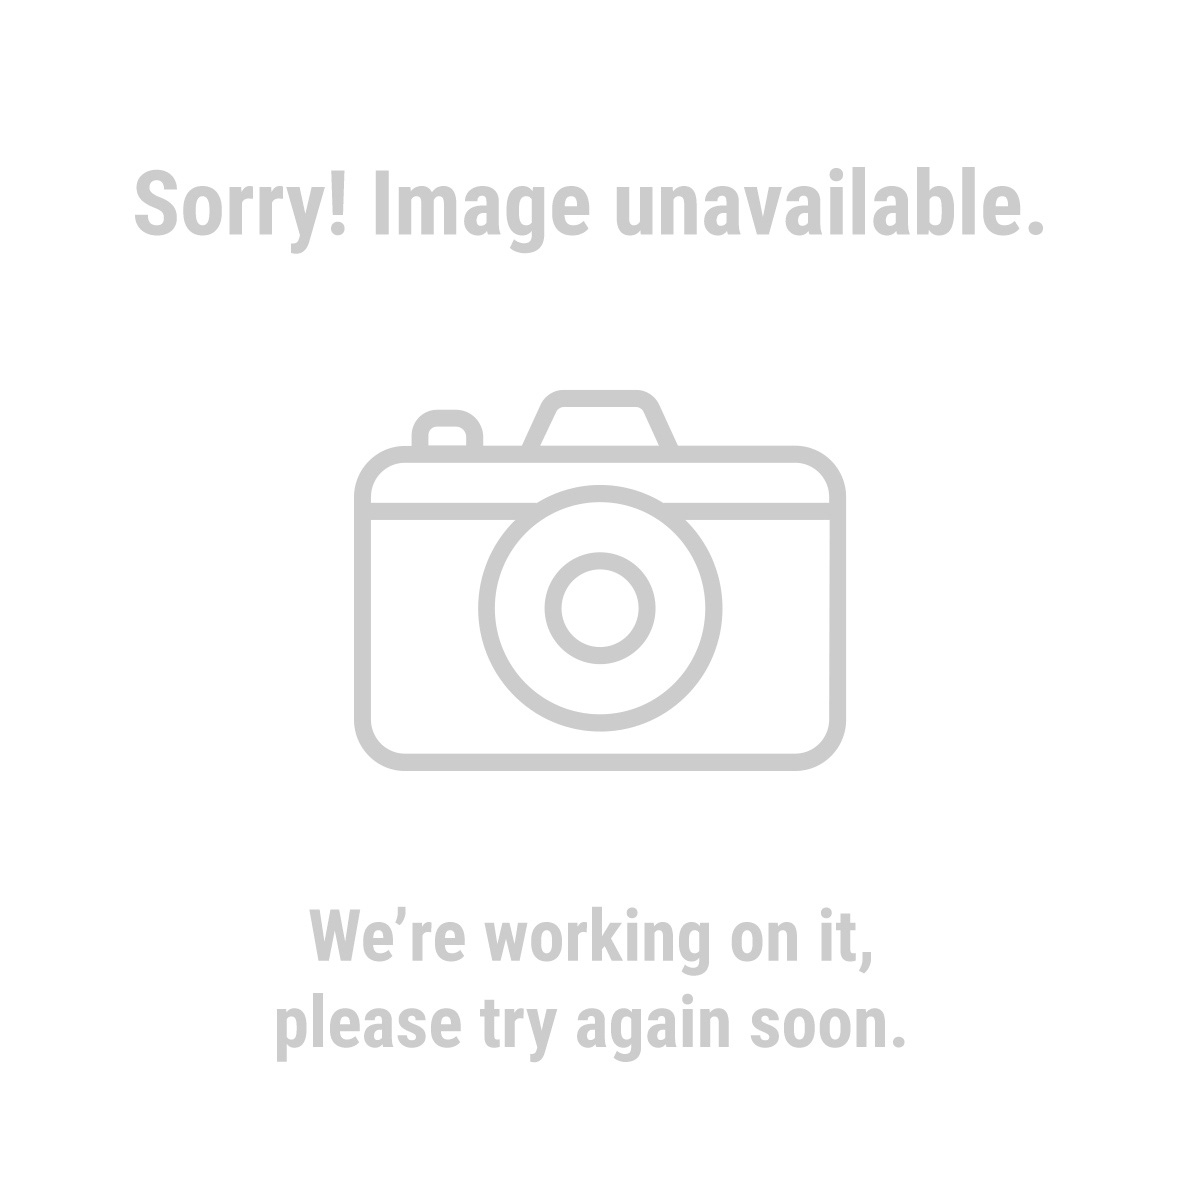 Chicago Electric Power Tools 42947 Concrete Vibrator